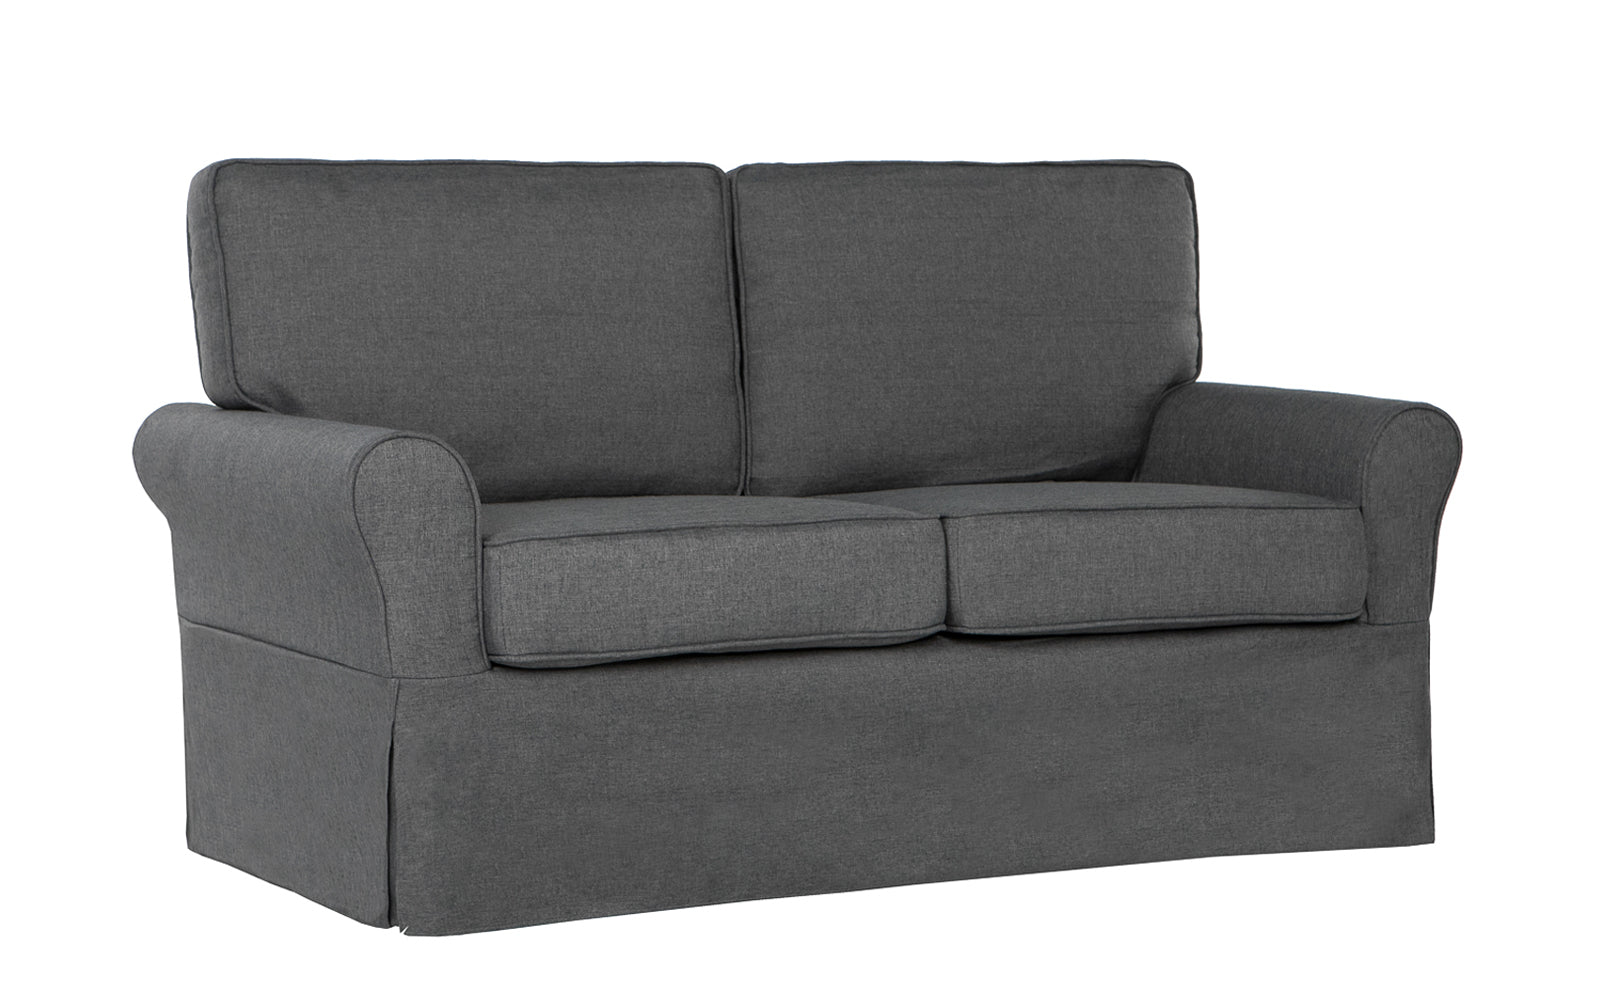 beyond sectional bed for slipcover and ideas ta sofa slipcovers breathtaking covers cover decor home furniture loveseat couch target grey bath chic